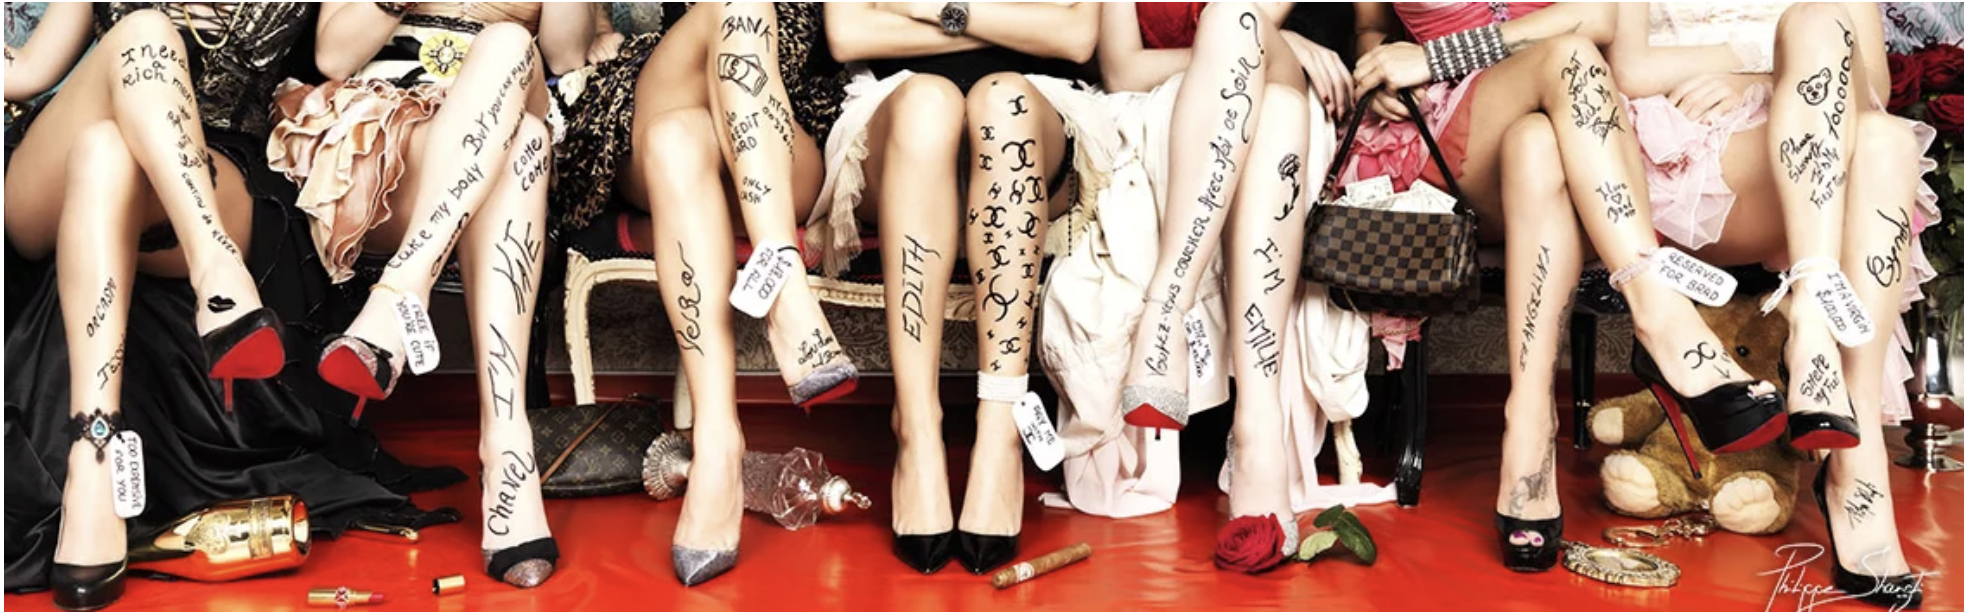 Prostitution Legs by Philippe Shangti